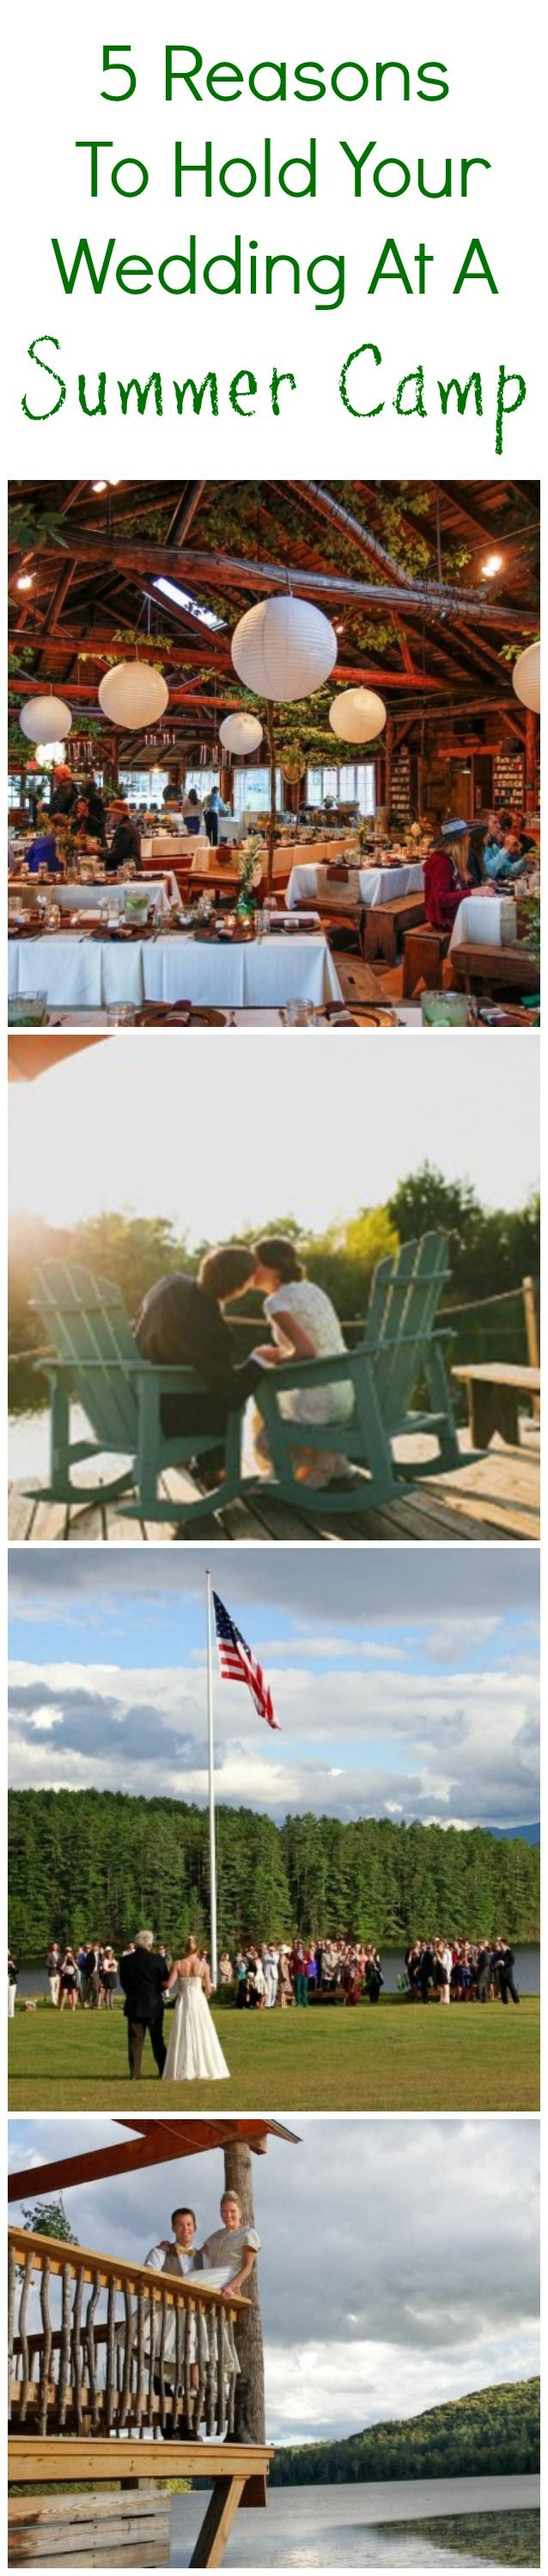 best one day images on pinterest marriage wedding and